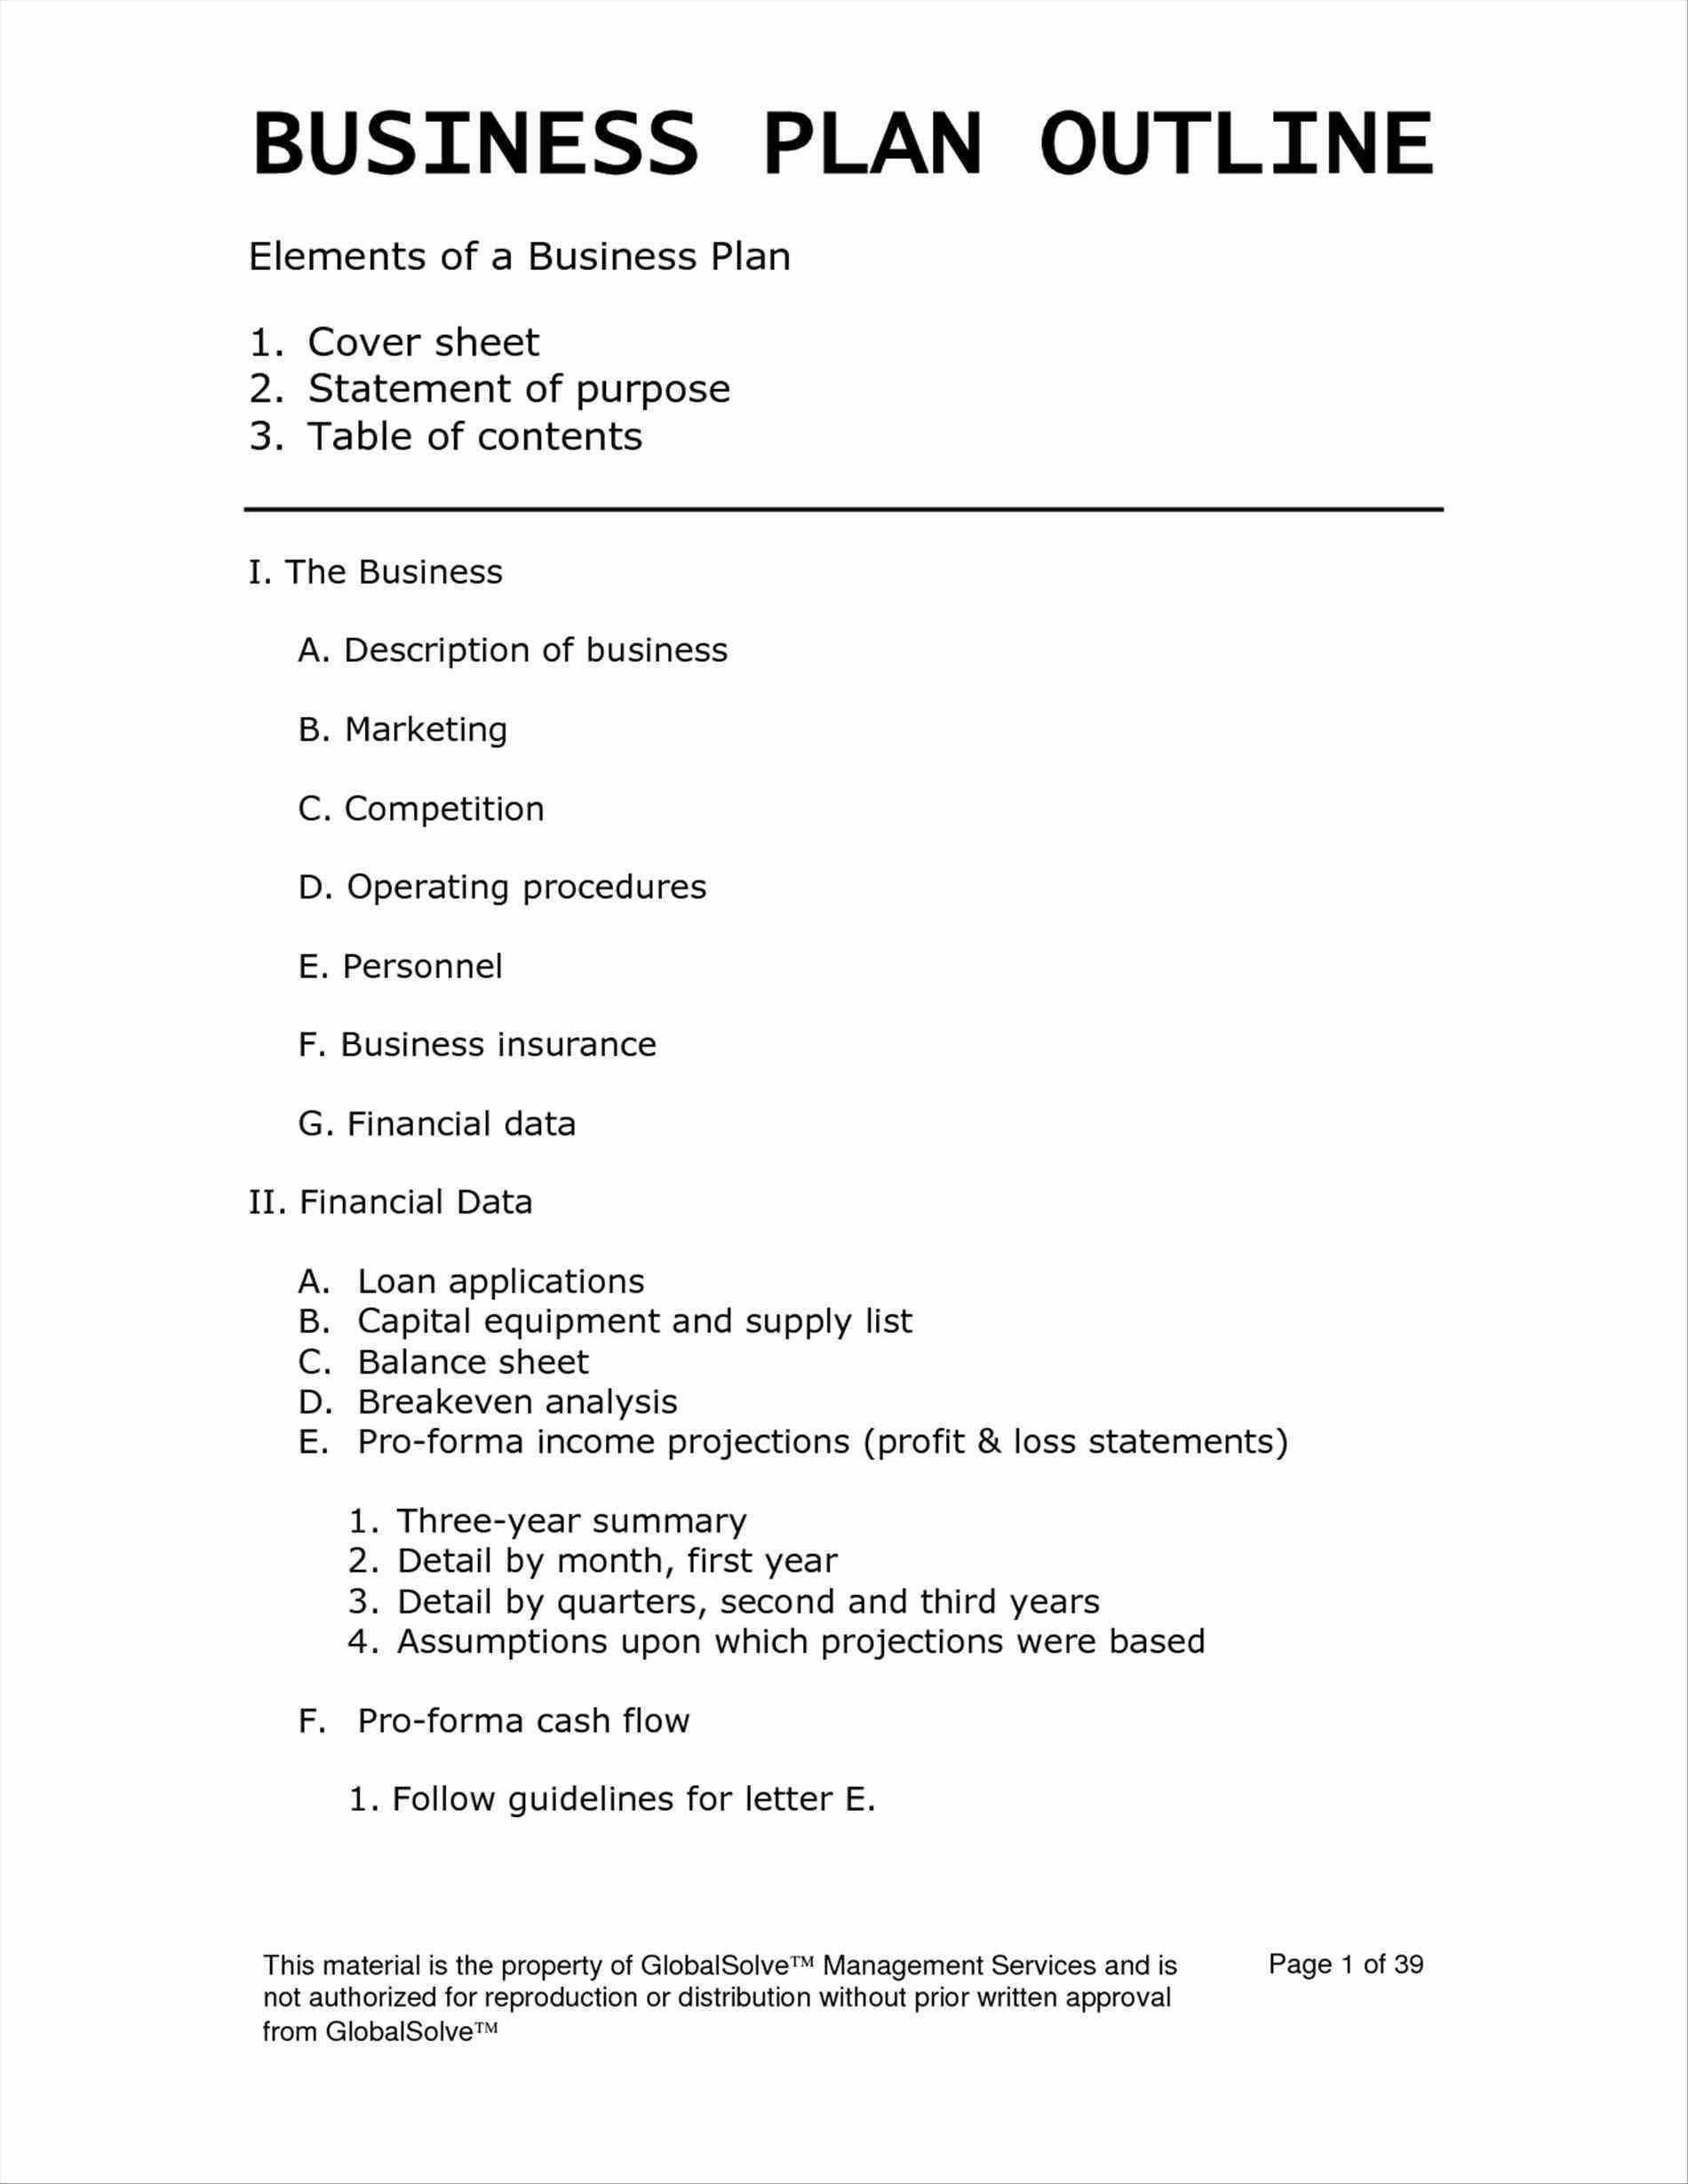 Free Daycare Business Plan Plans Ild Care Template Ppt Day In Daycare Business Plan Template Free Download